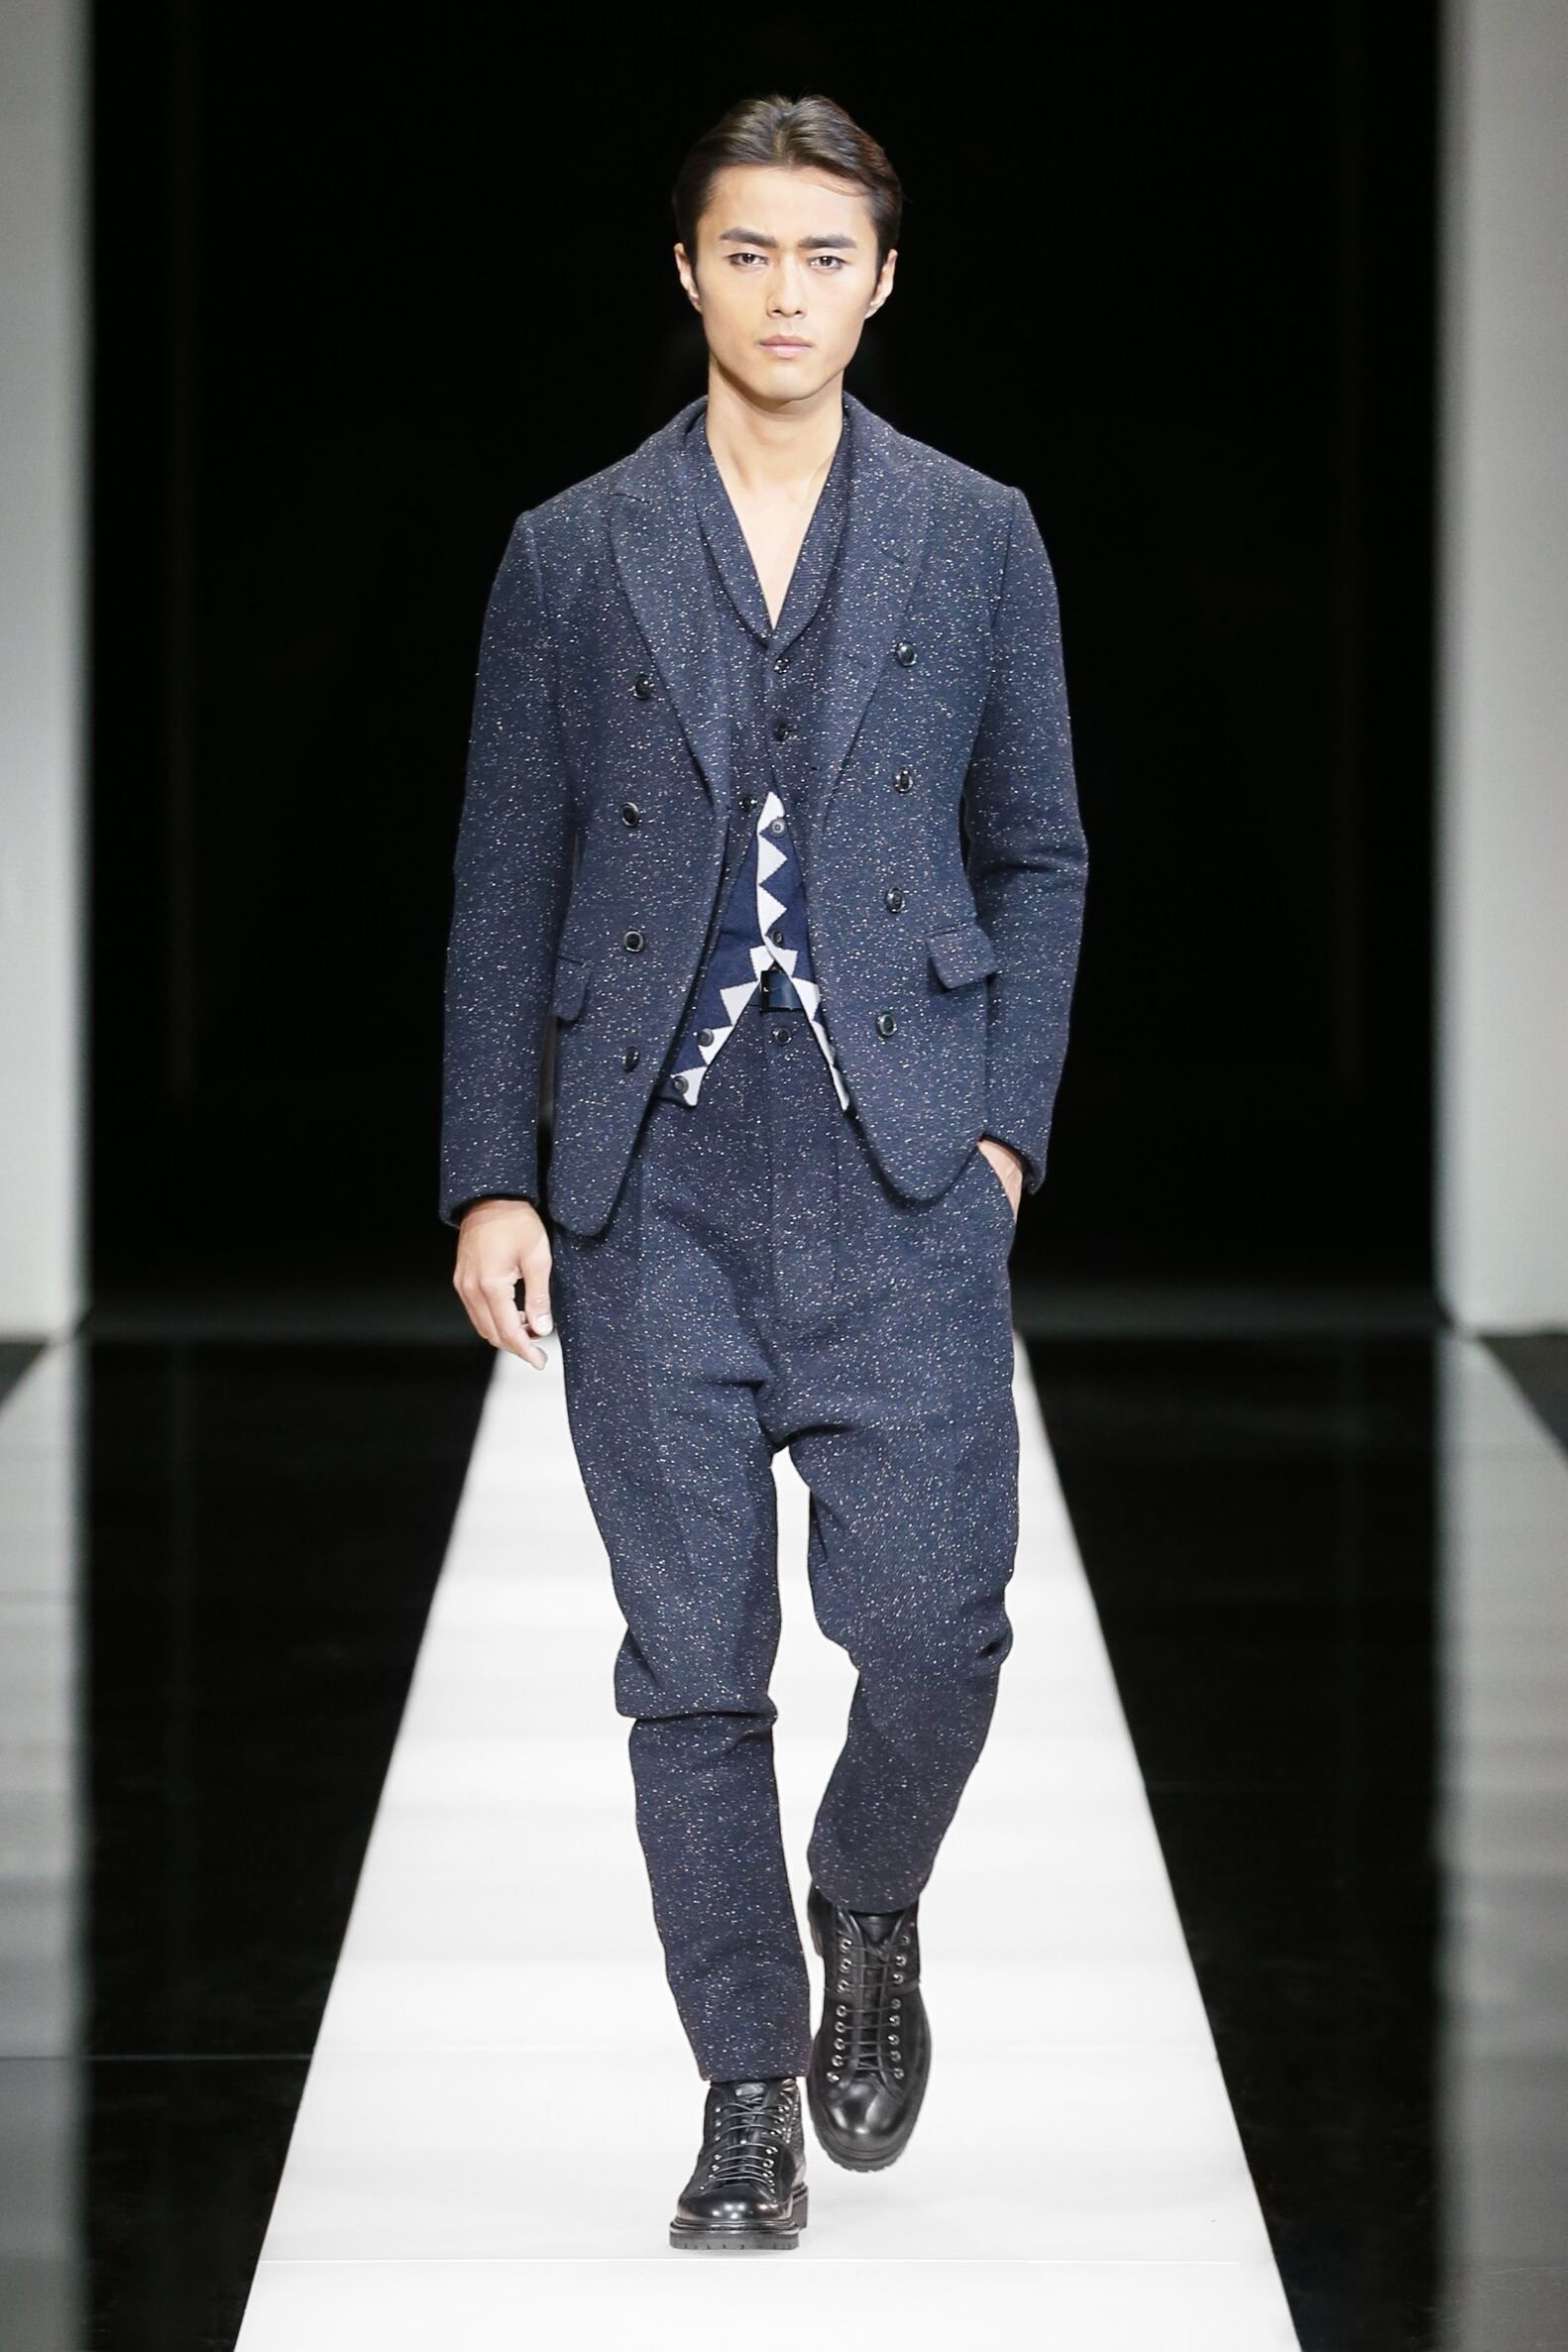 2016 Fall Fashion Man Giorgio Armani Collection